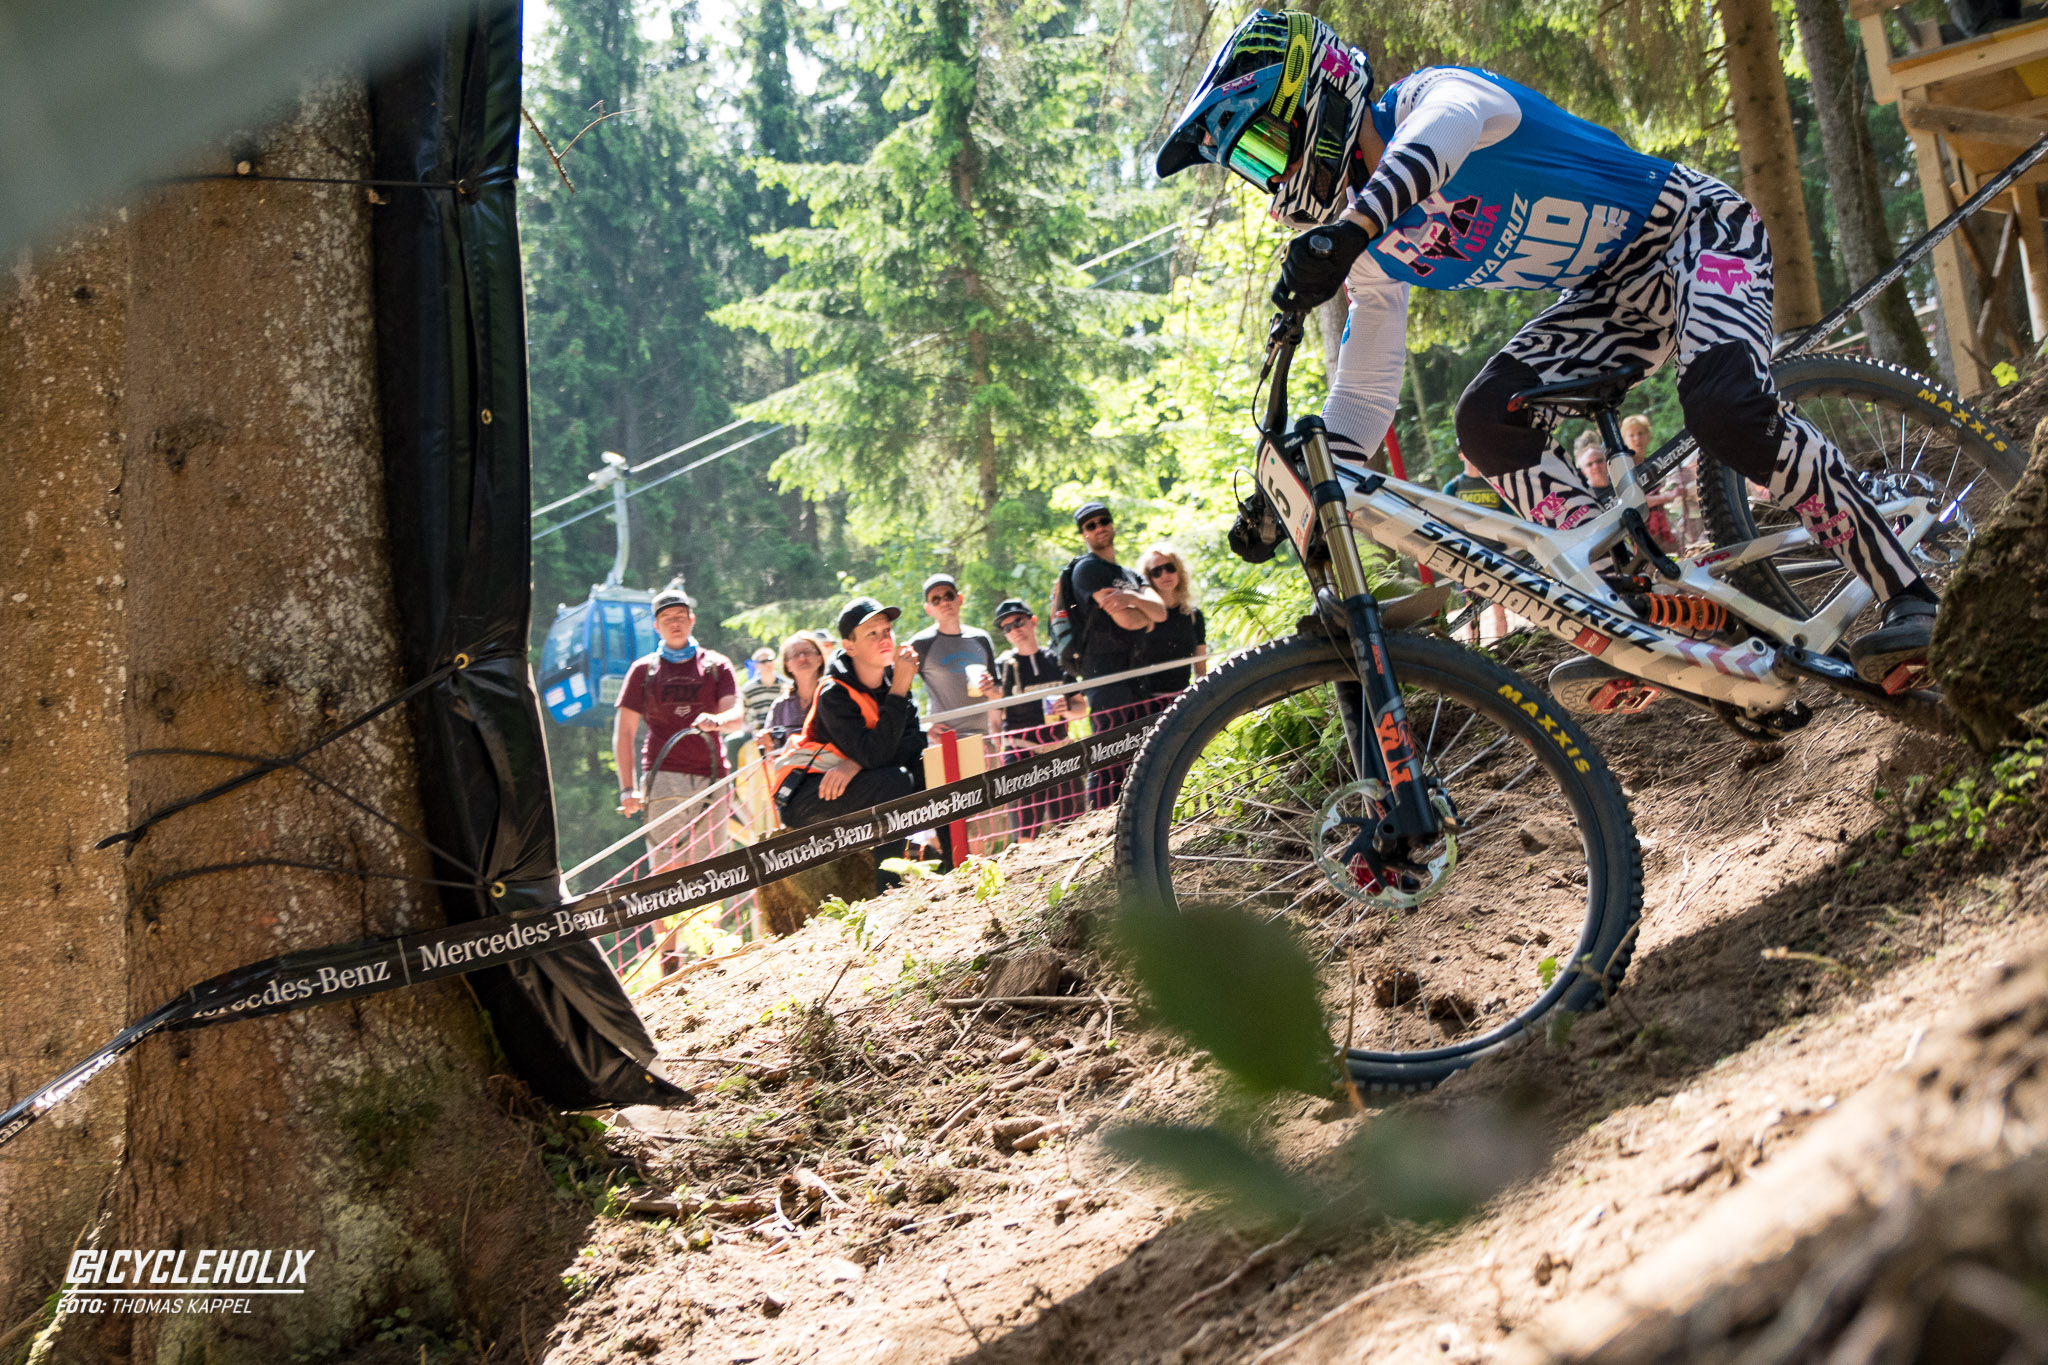 2019 Downhill Worldcup Leogang Finale Action 8 Cycleholix